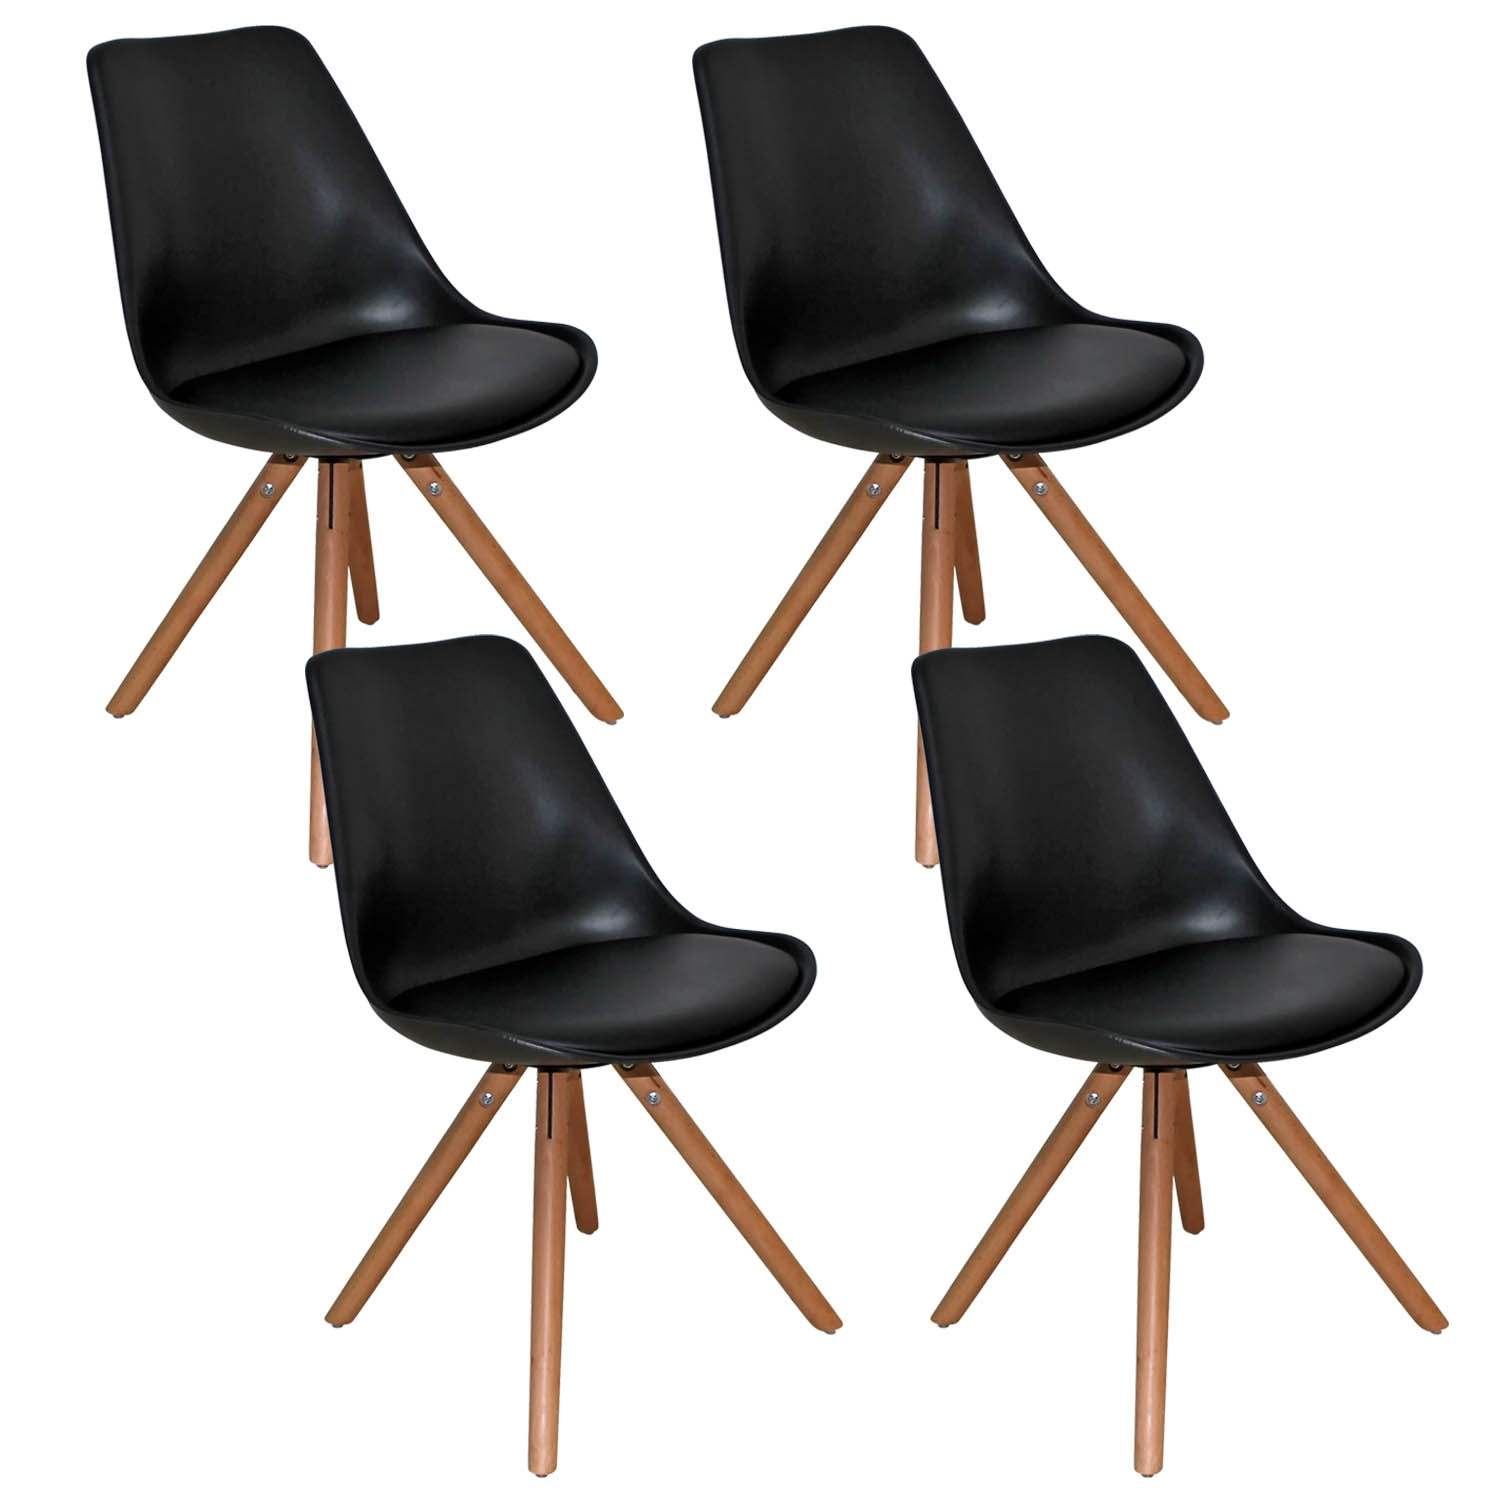 Deco in paris lot de 4 chaises design noir velta velta noir x4 - Chaises sejour design ...